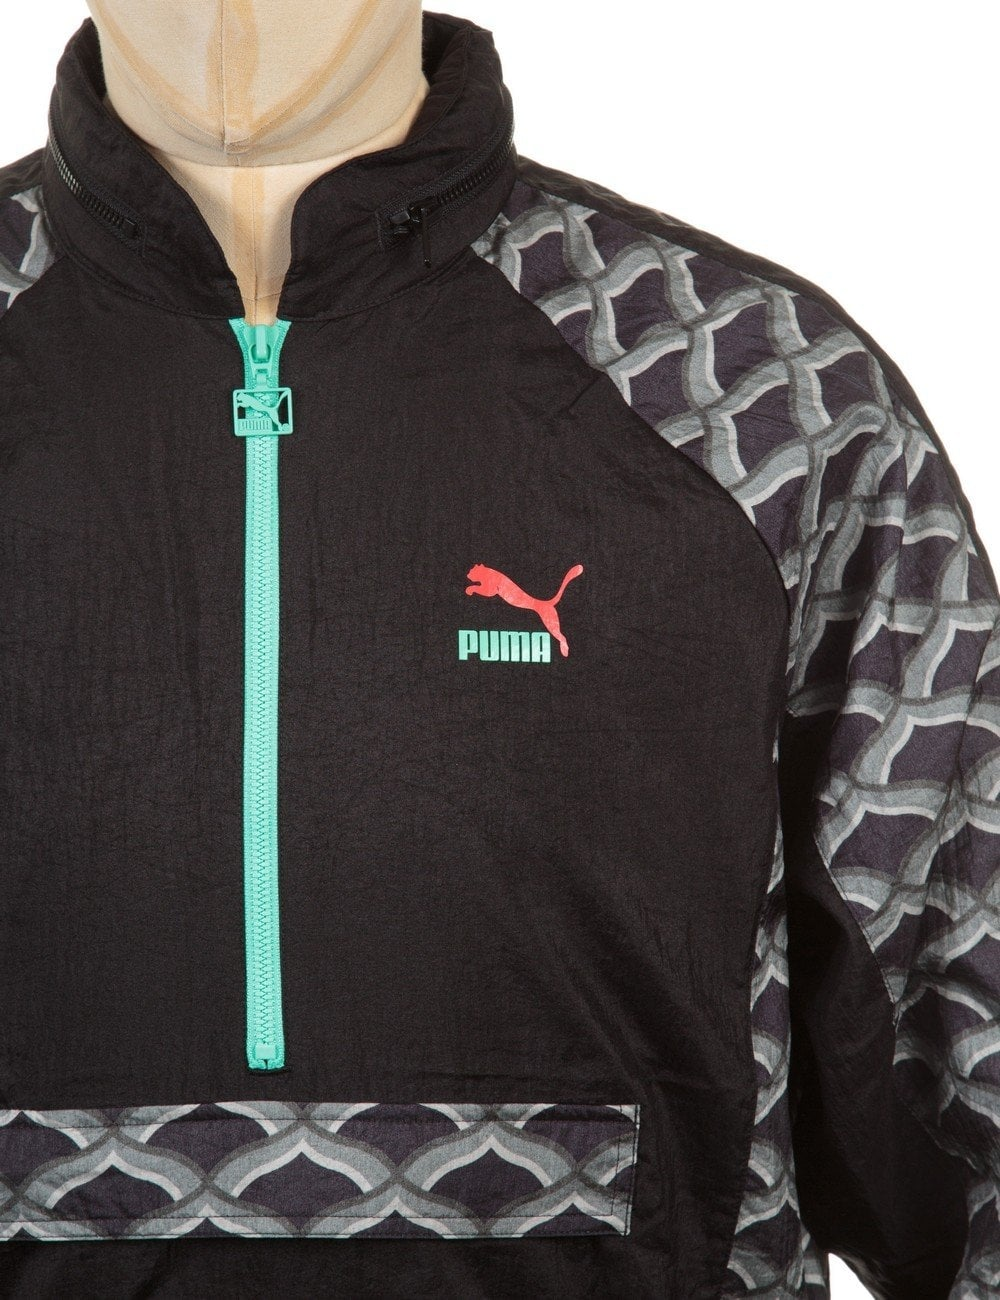 Puma x Alife AOP Savanah Jacket - Black - Clothing from Fat Buddha ... 52a88d9ec8f8